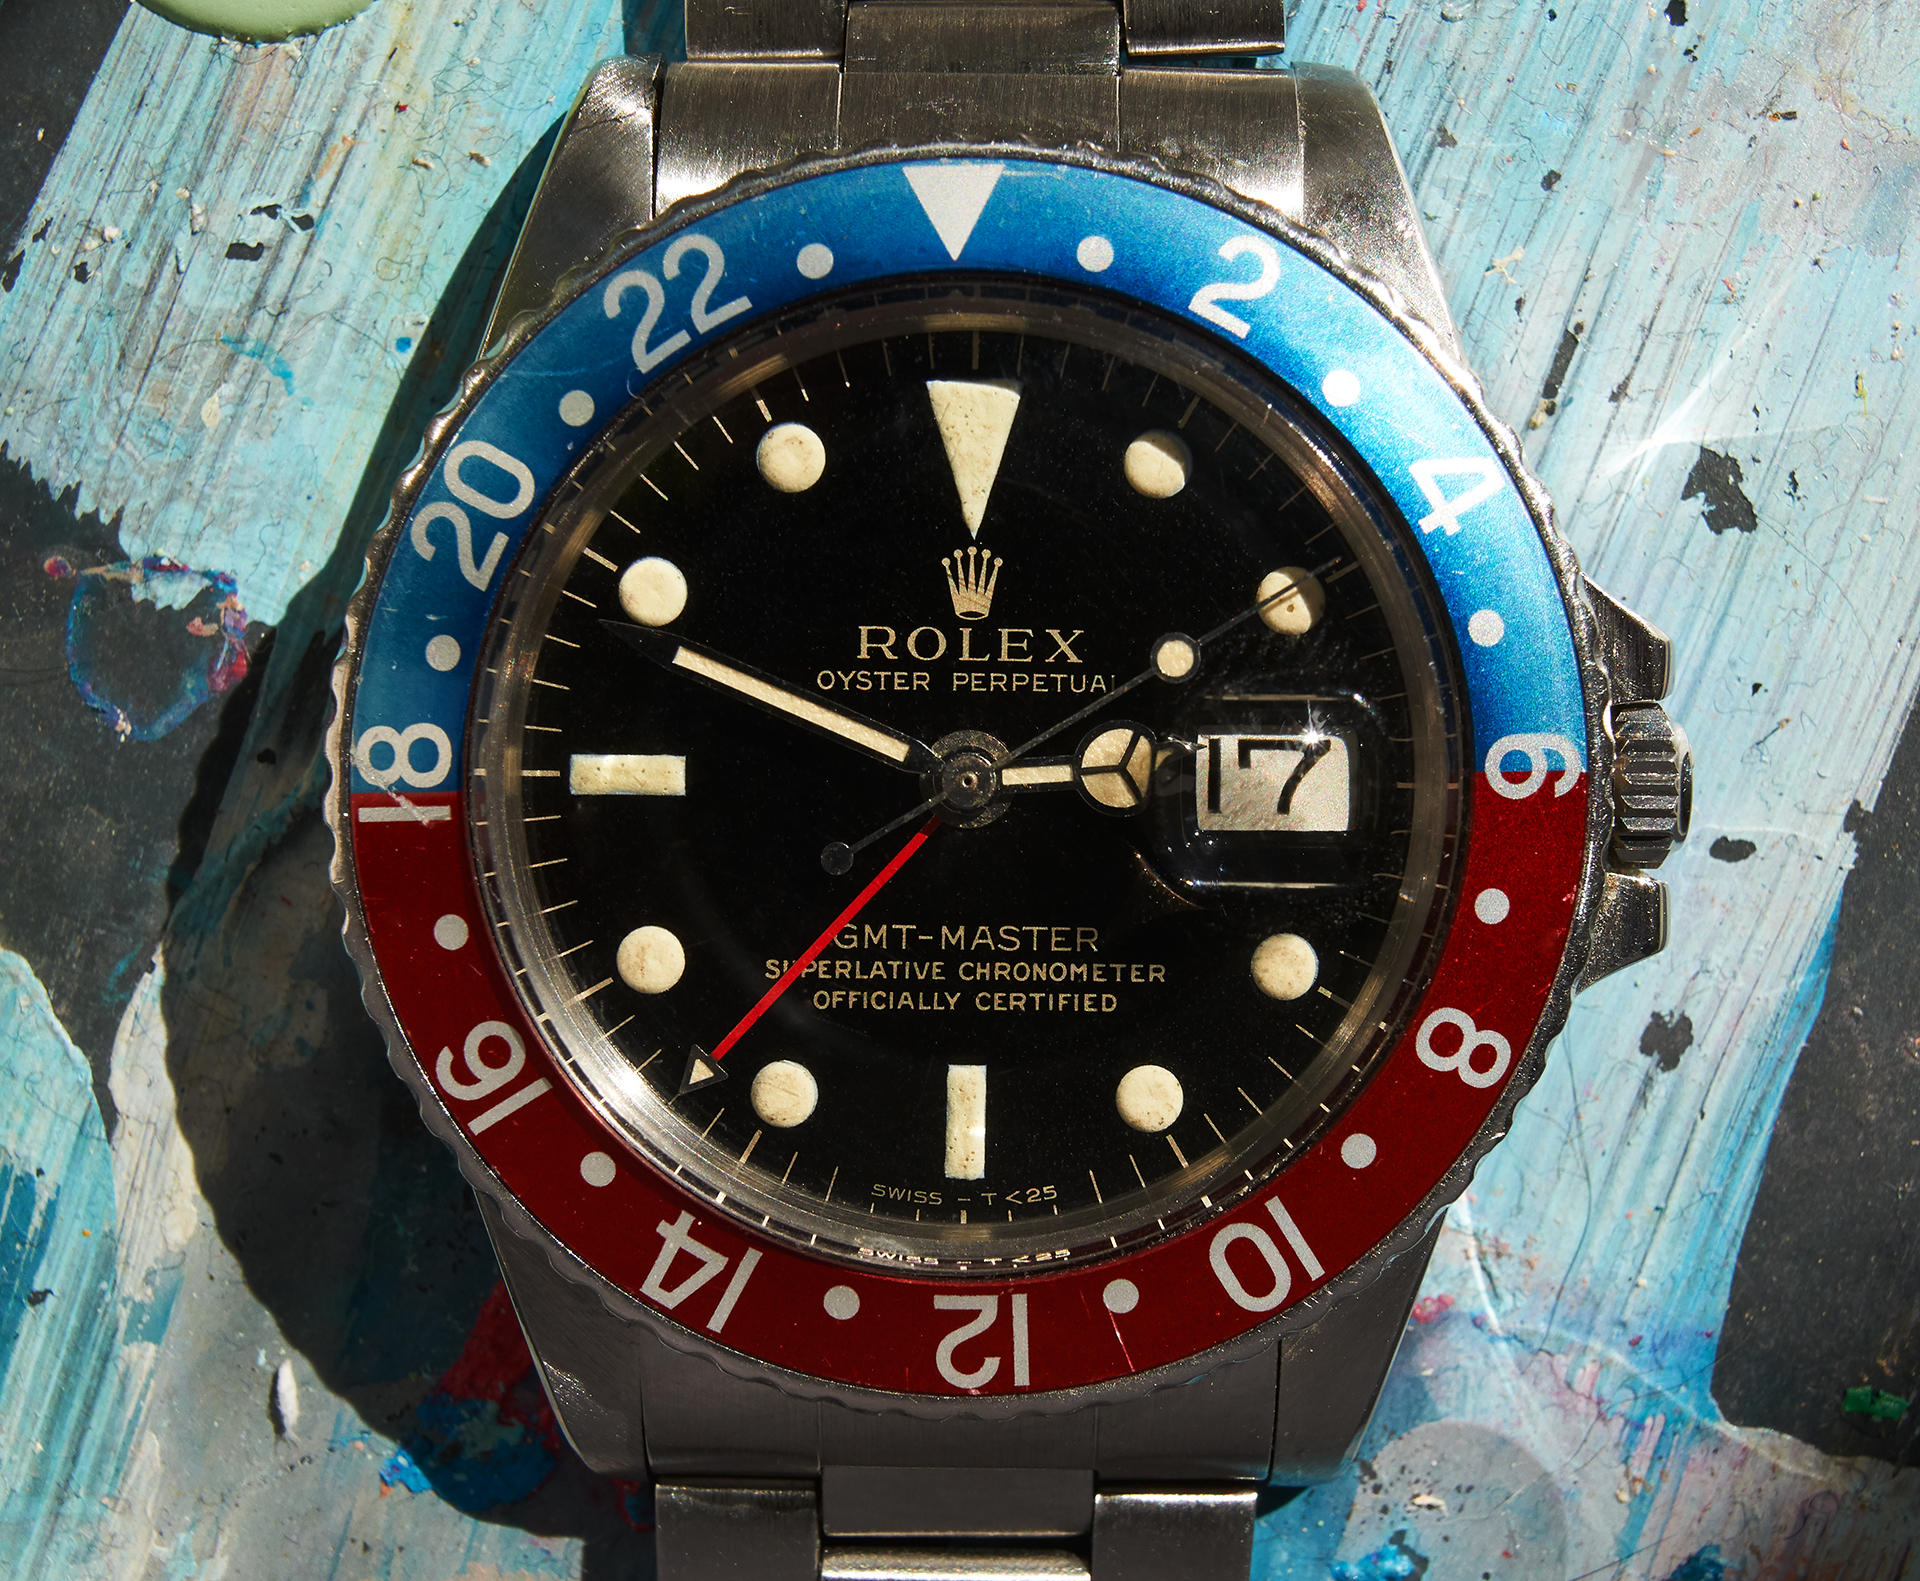 Rolex 1675 gmt master gilt/glossy dial